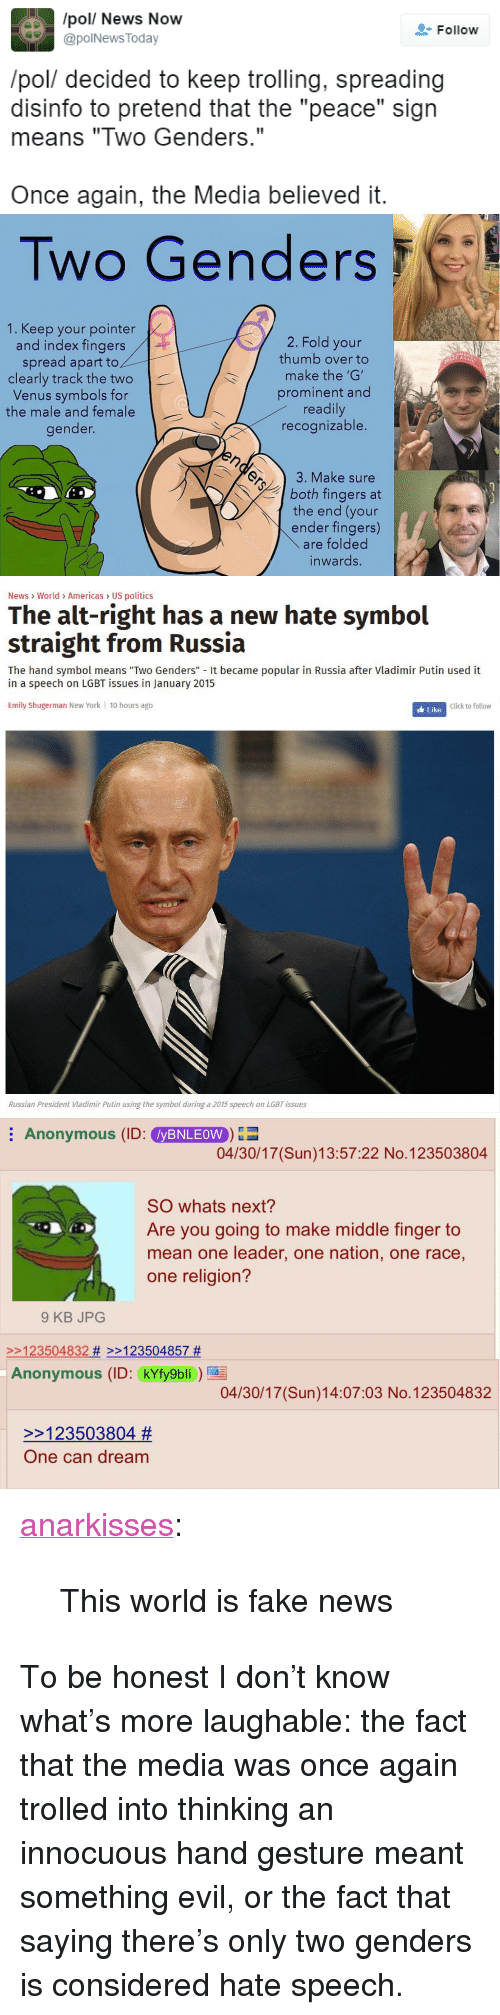 "Hate Symbol: /pol/ News Now  @polNews Today  Follow  /pol/ decided to keep trolling, spreading  disinfo to pretend that the ""peace"" sign  means ""Two Genders.""  Once again, the Media believed it.   Two Genders  1. Keep your pointer  and index fingers  spread apart to  clearly track the two  Venus symbols for  the male and female  gender.  2. Fold your  thumb over to  make the 'G'  prominent and  readily  recognizable.  T AGA  3. Make sure  both fingers at  the end (your  ender fingers)  are folded  inwards.   News World> Americas US politics  The alt-right has a new hate symbol  straight from Russia  The hand symbol means ""Two Genders"" It became popular in Russia after Vladimir Putin used it  in a speech on LGBT issues in January 2015  Emily Shugerman New York 10 hours ago  Click to follow  Russian President Viadimir Putin using the symbol during a 2015 speech on LGBT issues   Anonymous (ID: yBNLEOW  04/30/17 (Sun)13:57:22 No.123503804  SO whats next?  Are you going to make middle finger to  mean one leader, one nation, one race,  one religion?  9 KB JPOG  2123504832 # >>123504857 #  Anonymous (ID: kYfy9bli  04/30/17 (Sun)14:07:03 No.123504832  >>123503804 #  One can dream <p><a href=""https://anarkisses.tumblr.com/post/160191763797/this-world-is-fake-news"" class=""tumblr_blog"">anarkisses</a>:</p>  <blockquote><p>This world is fake news</p></blockquote>  <p>To be honest I don&rsquo;t know what&rsquo;s more laughable: the fact that the media was once again trolled into thinking an innocuous hand gesture meant something evil, or the fact that saying there&rsquo;s only two genders is considered hate speech.</p>"